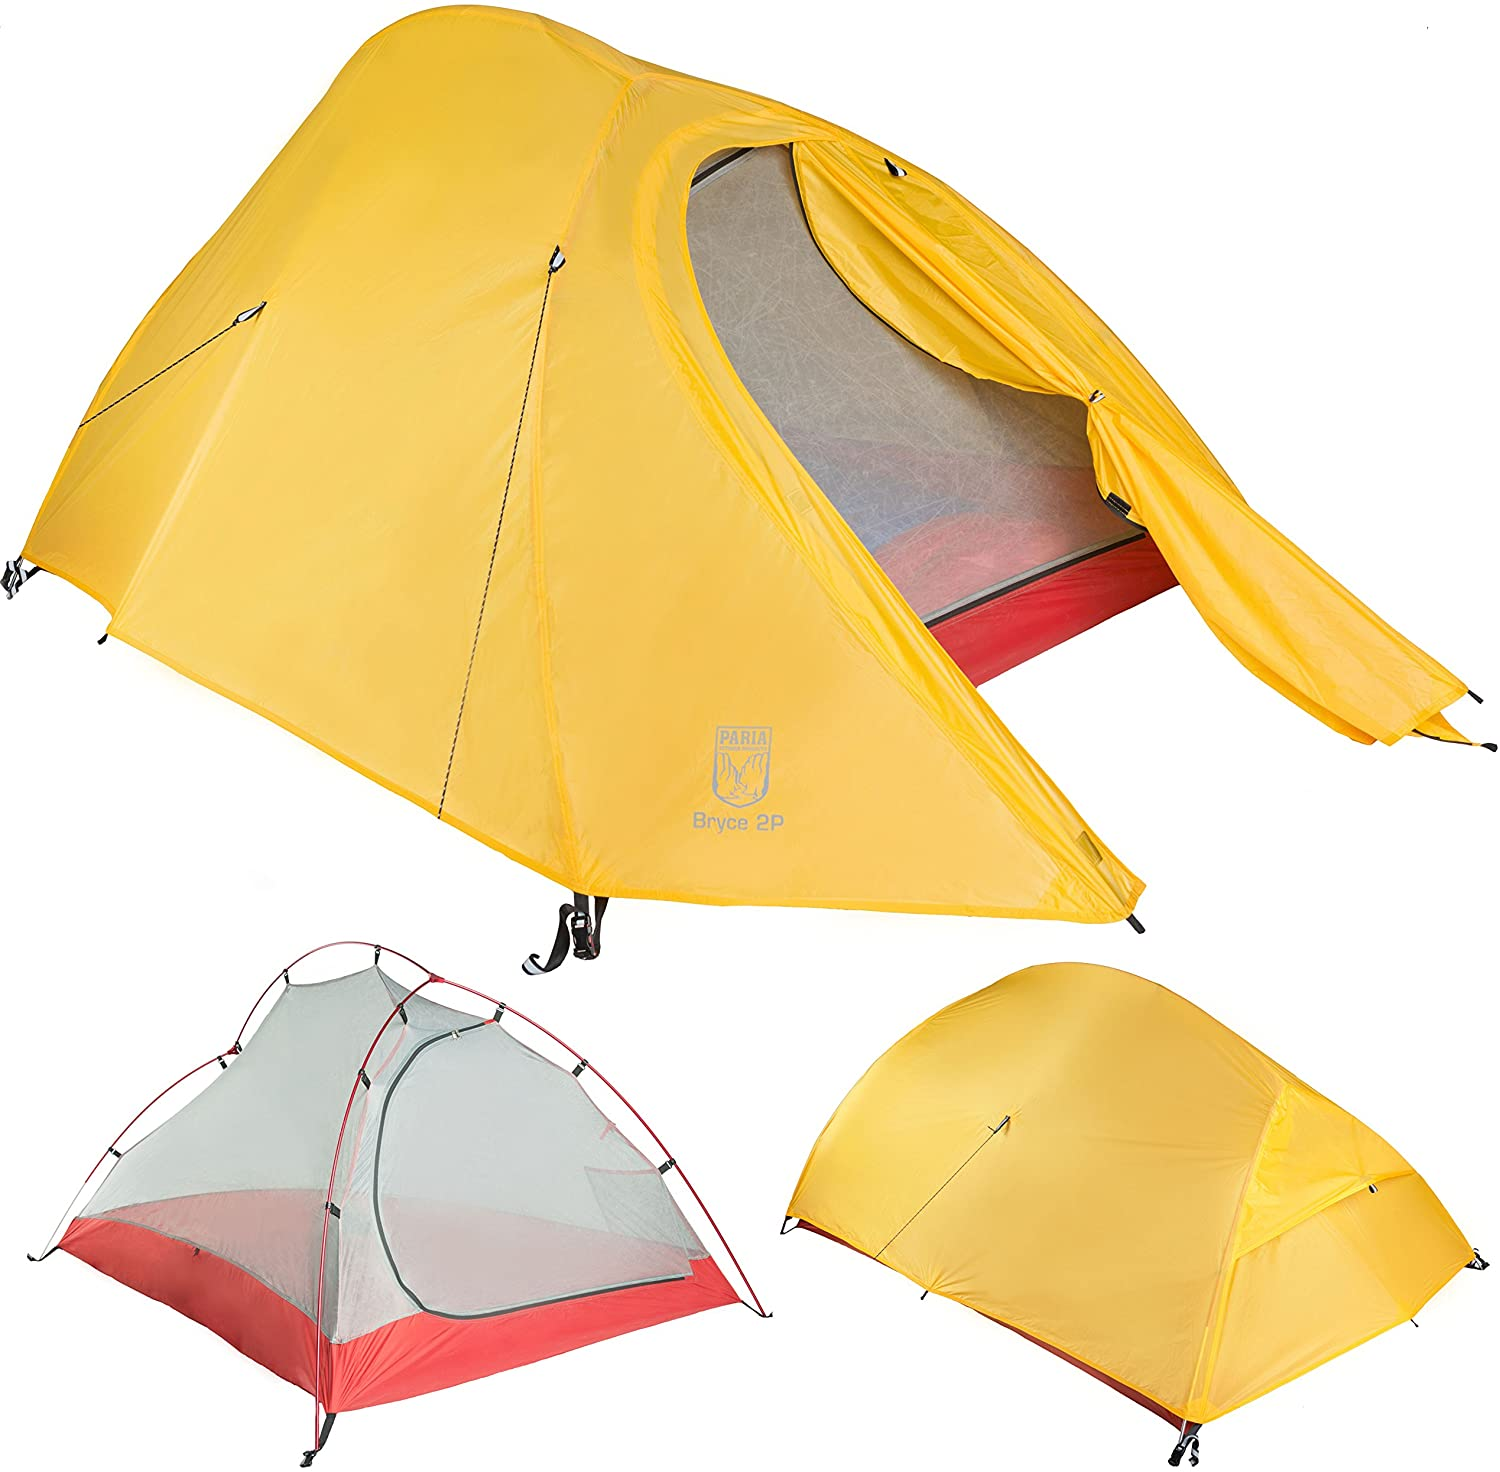 Paria Outdoor Products Bryce Ultralight Tent and Footprint image